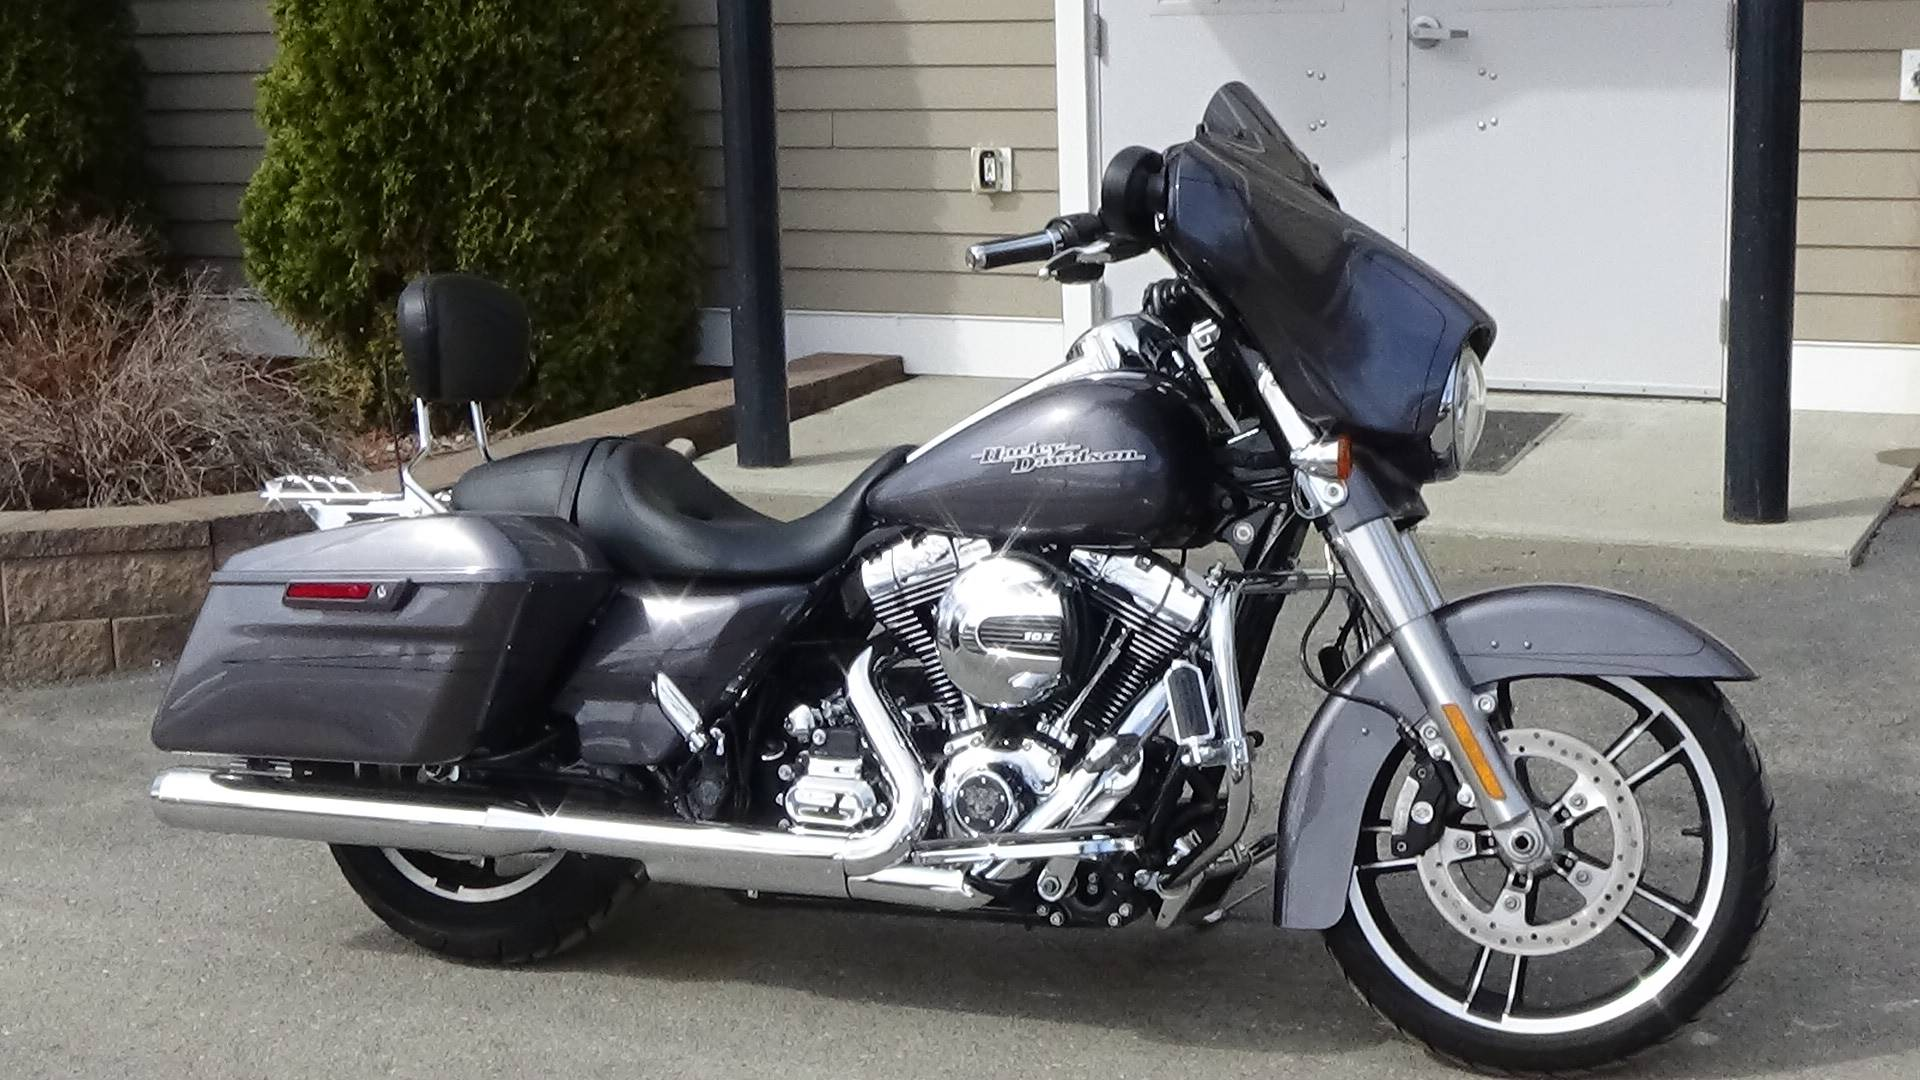 Used 2015 Harley-Davidson Street Glide® Special Motorcycles in ...